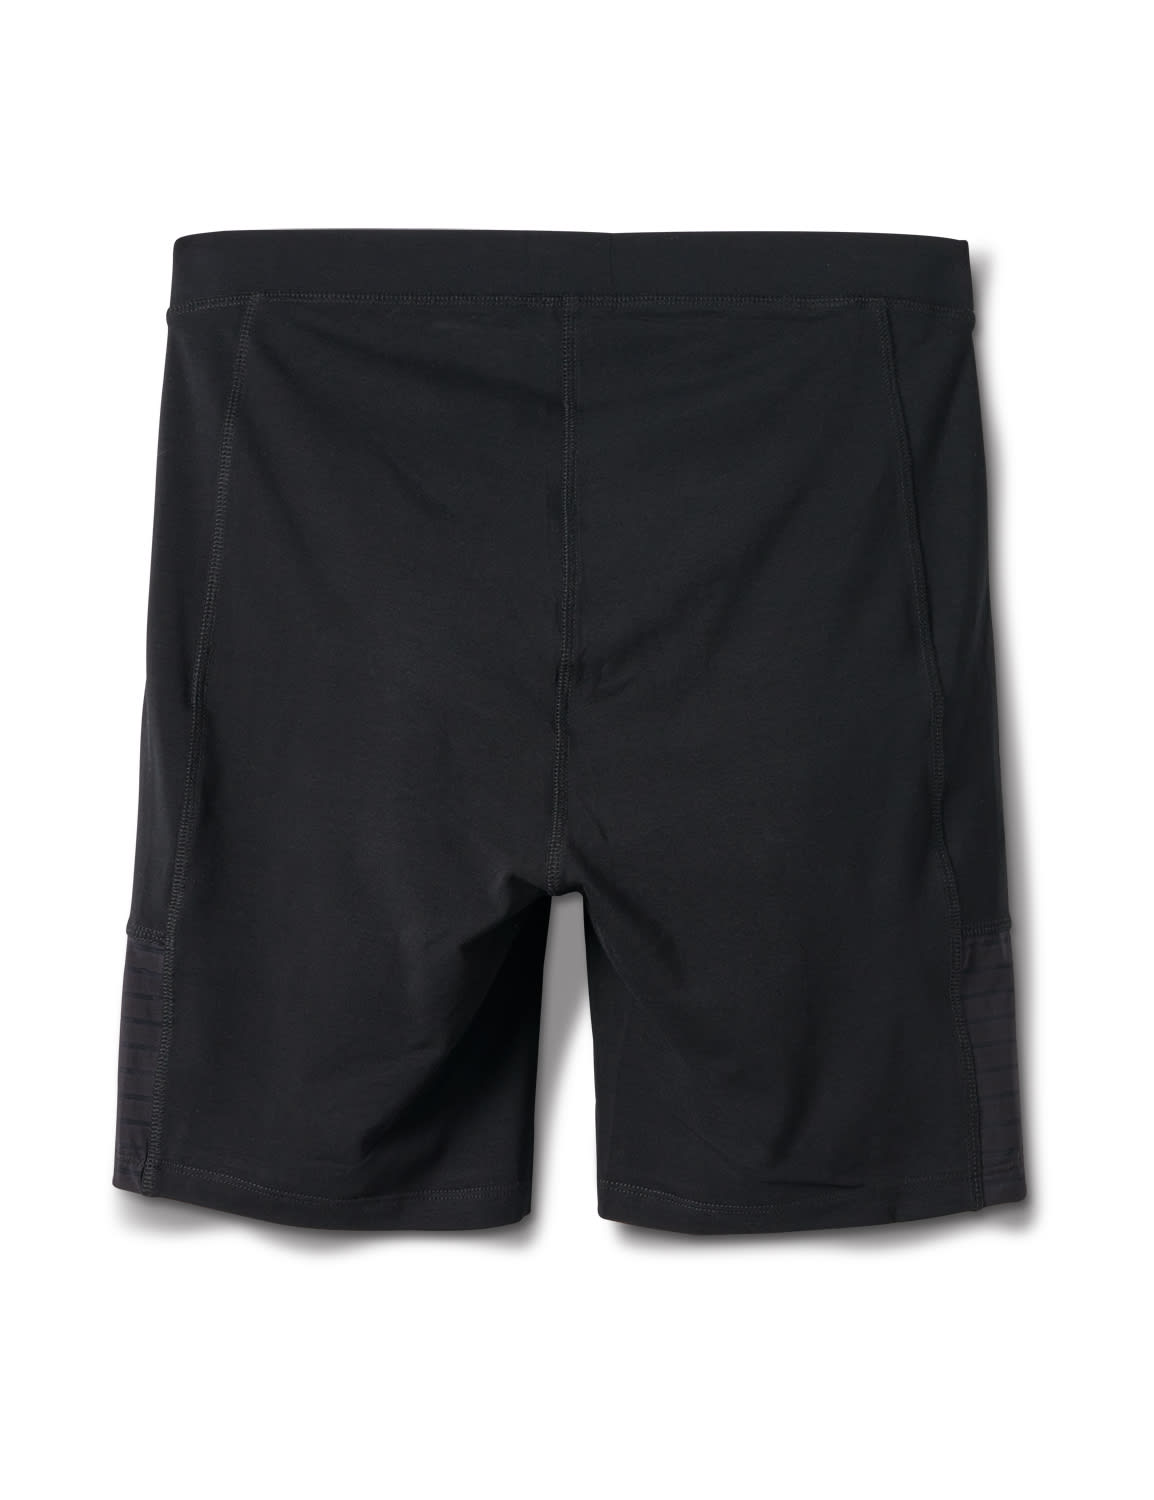 Pima Cotton Bike Short - Plus - Black - Back